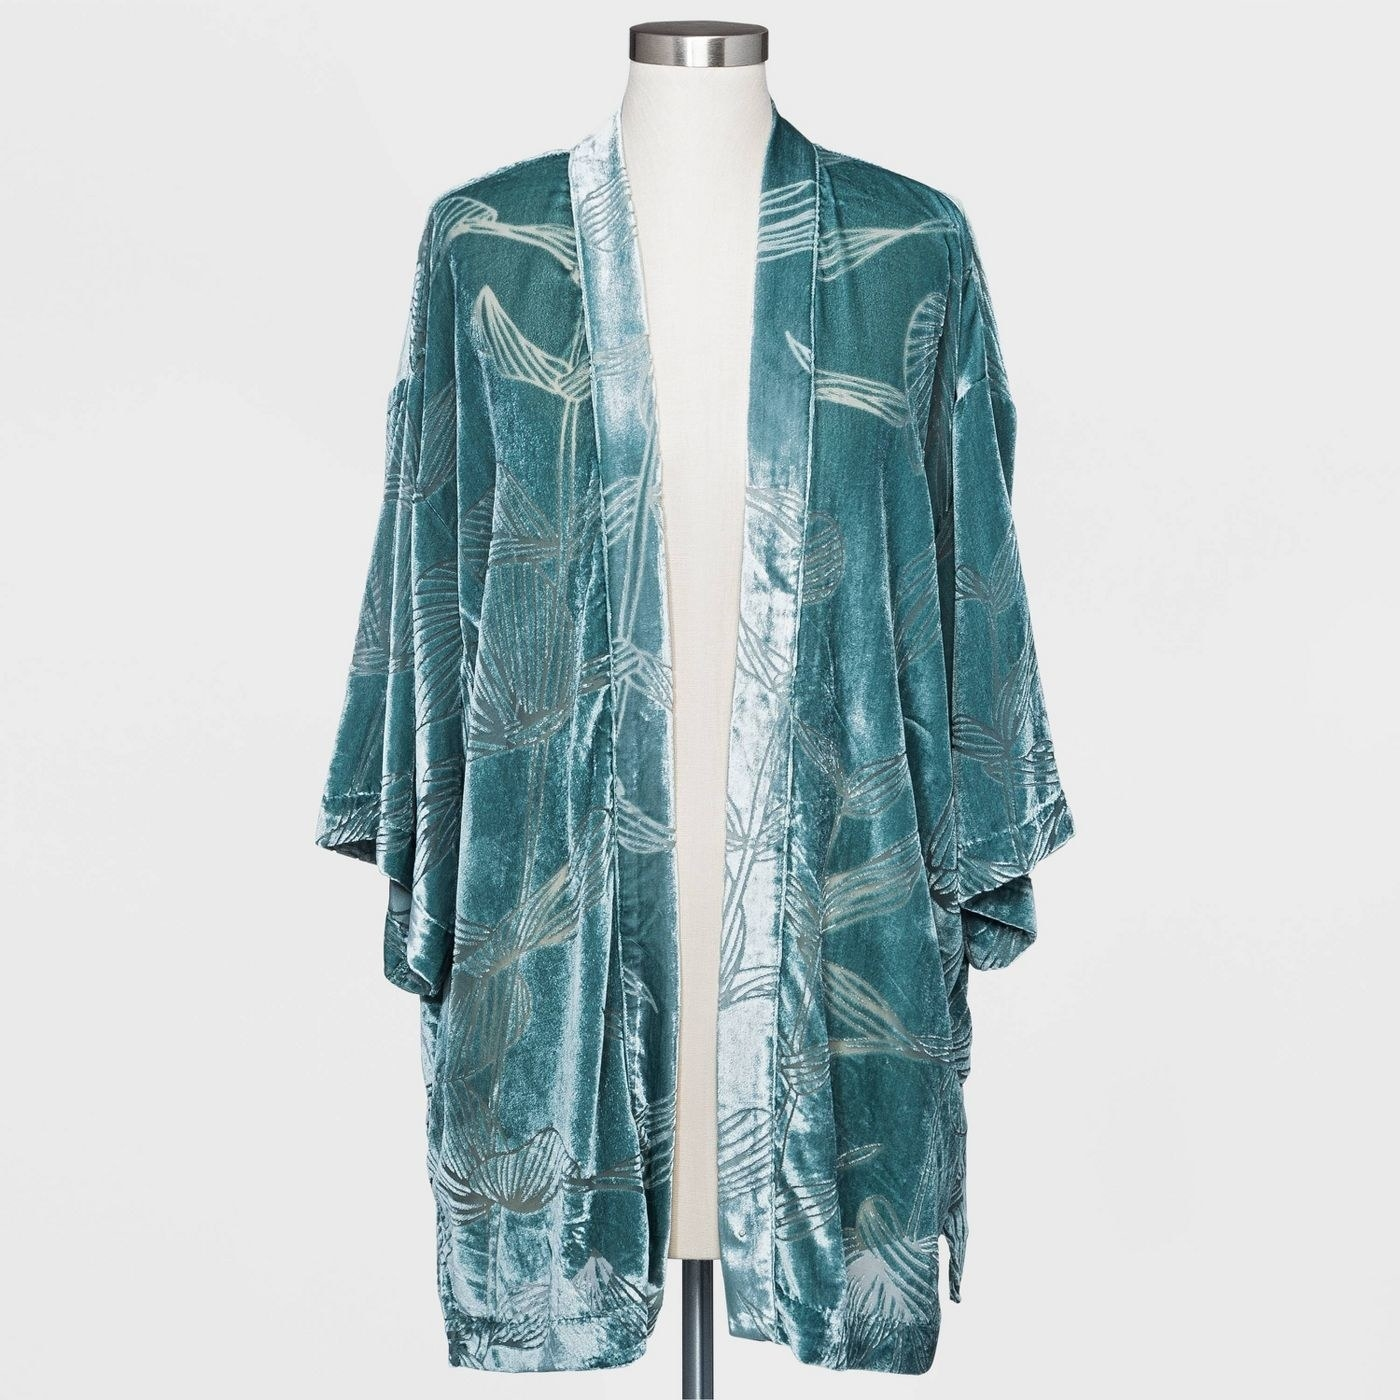 Teal kimono with floral pattern